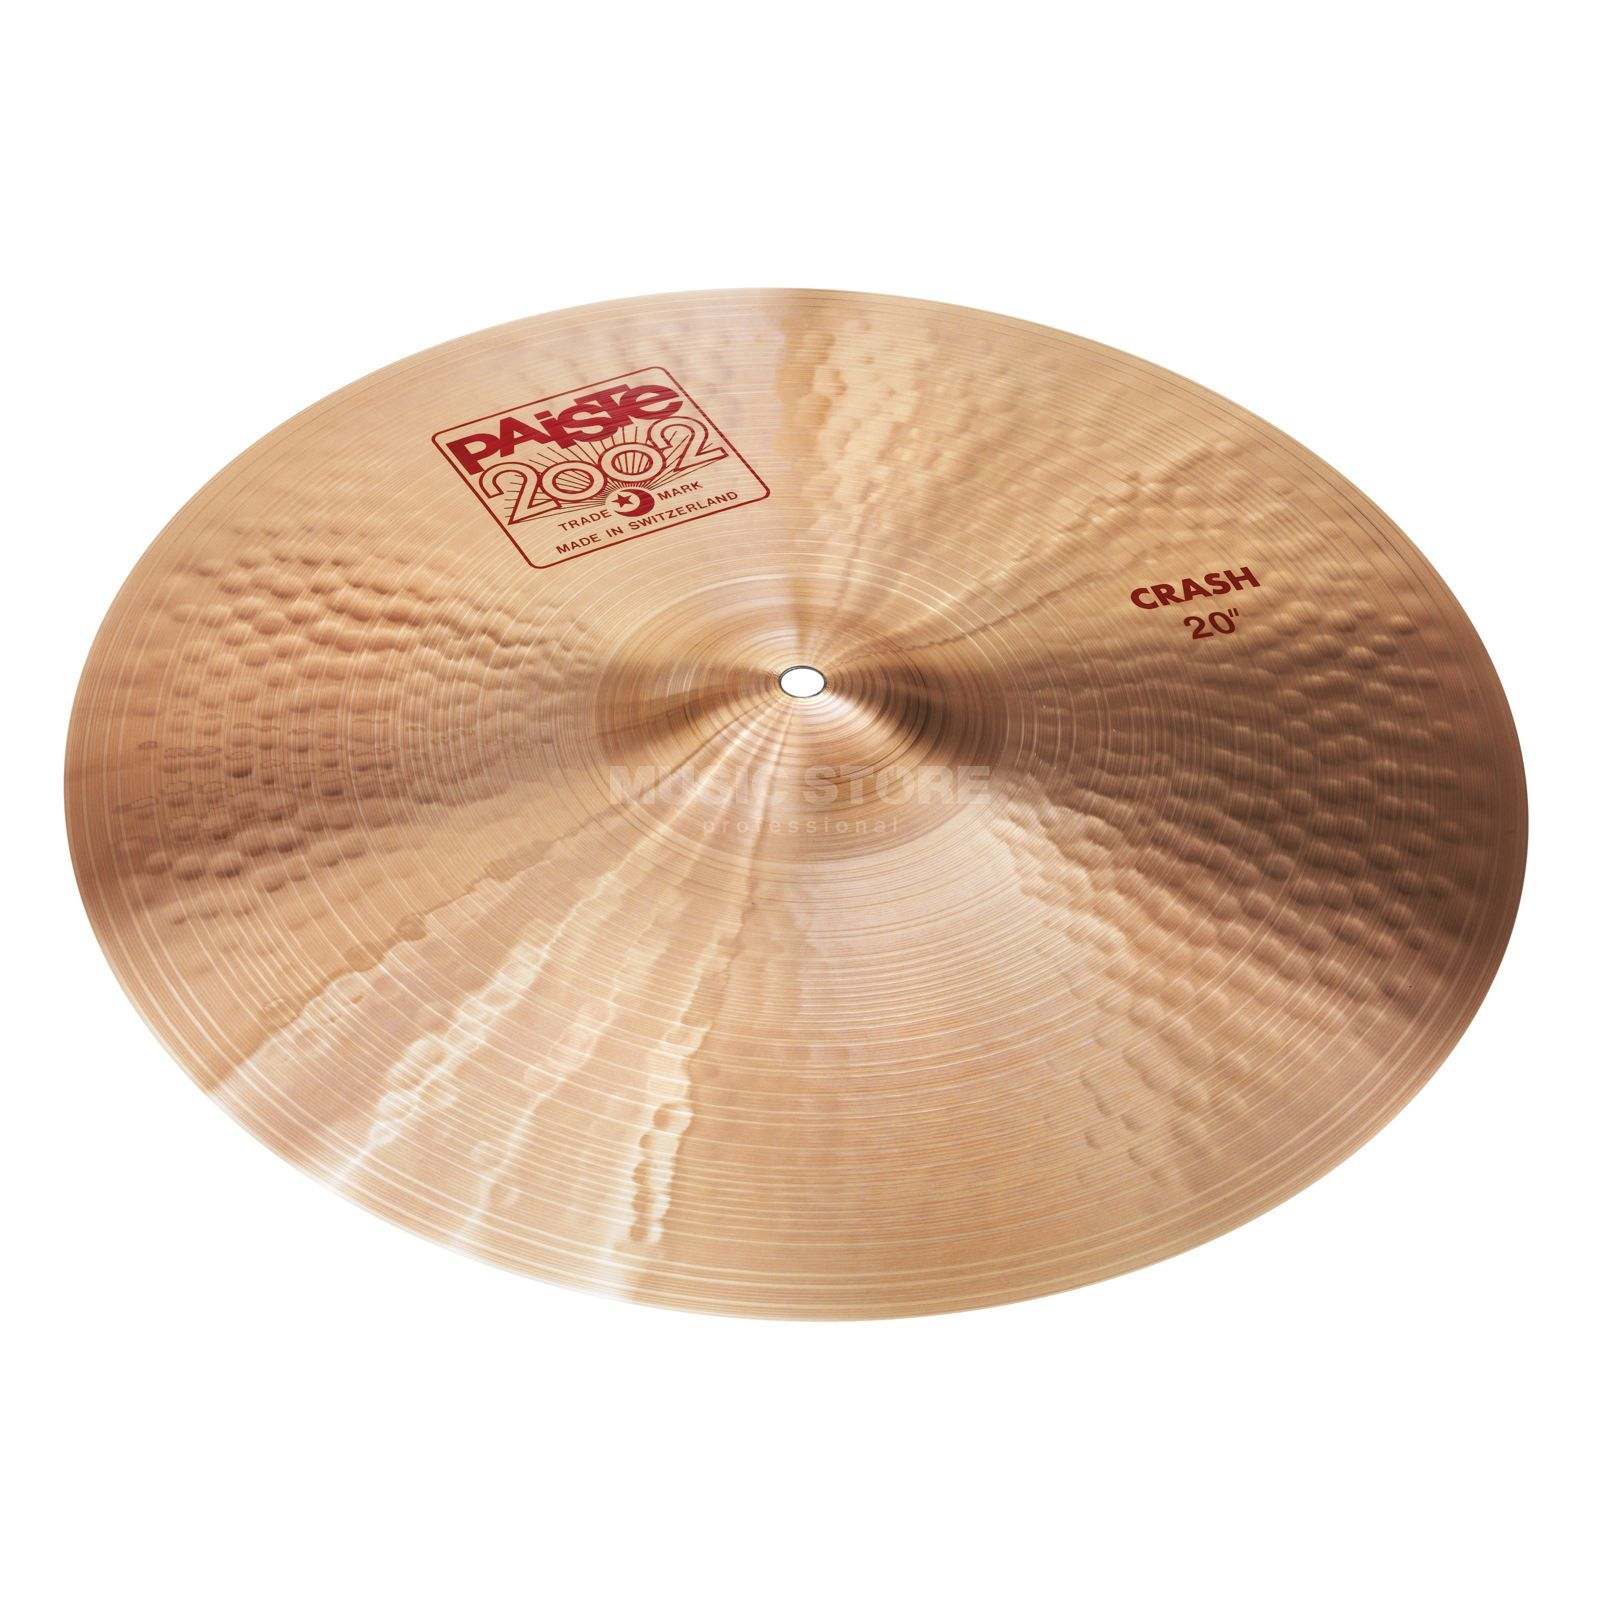 "Paiste 2002 Crash 20"" Product Image"